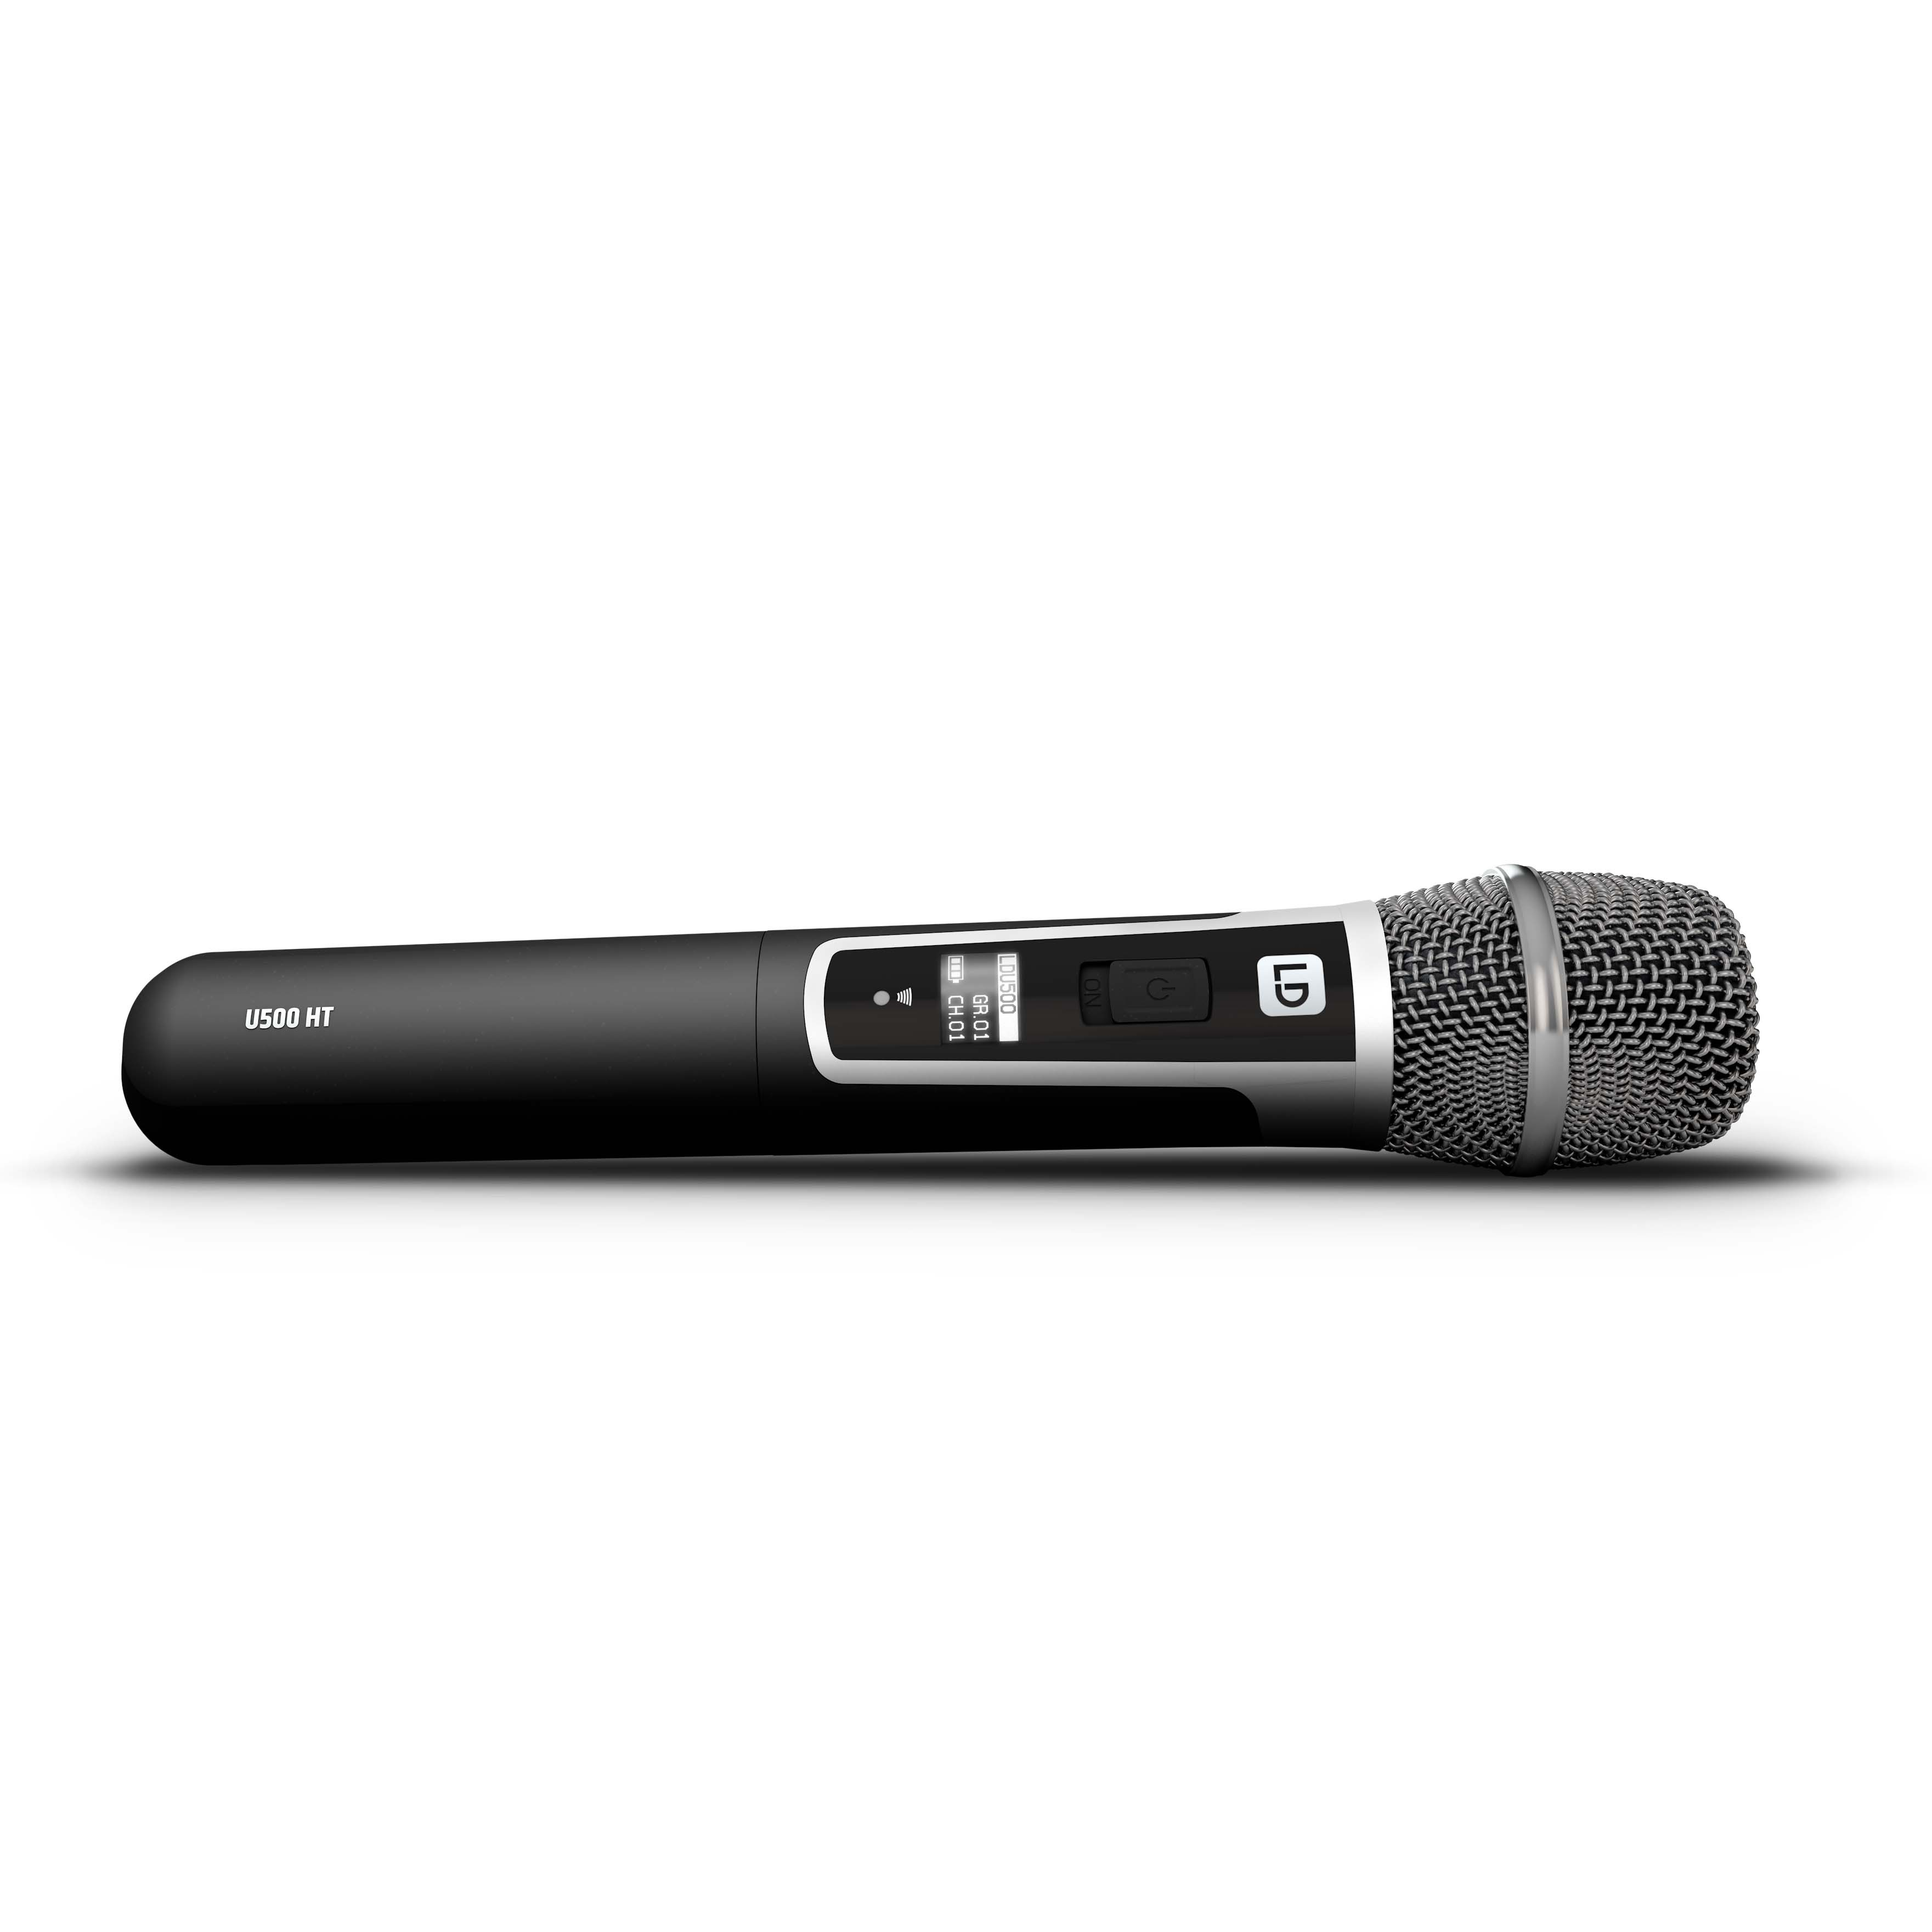 U508 HHC Wireless Microphone System with Condenser Handheld Microphone